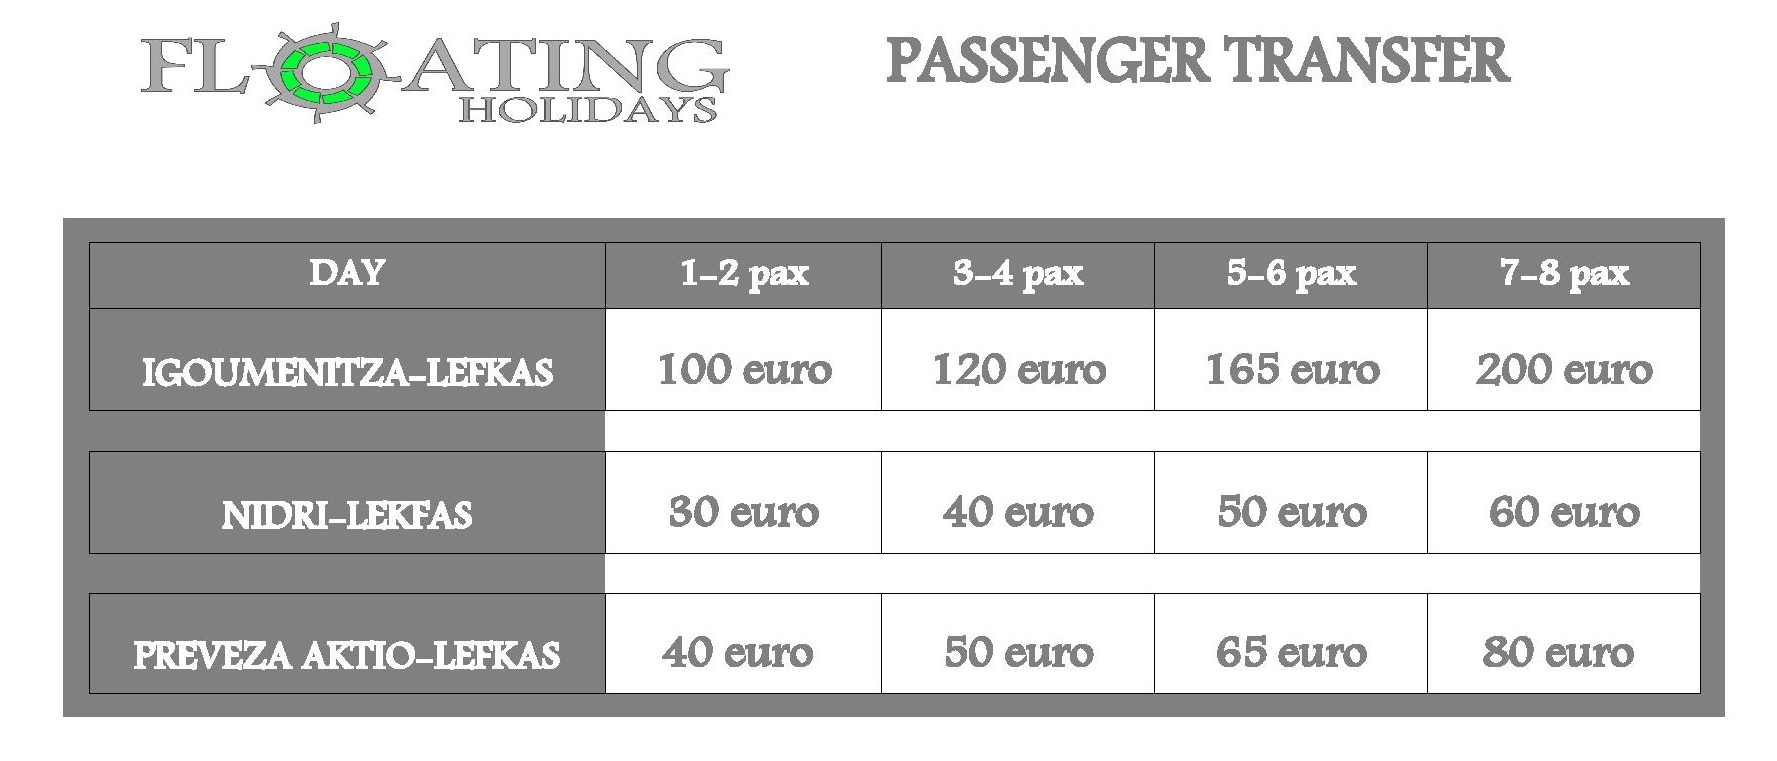 Shuttle to and from ports / airports